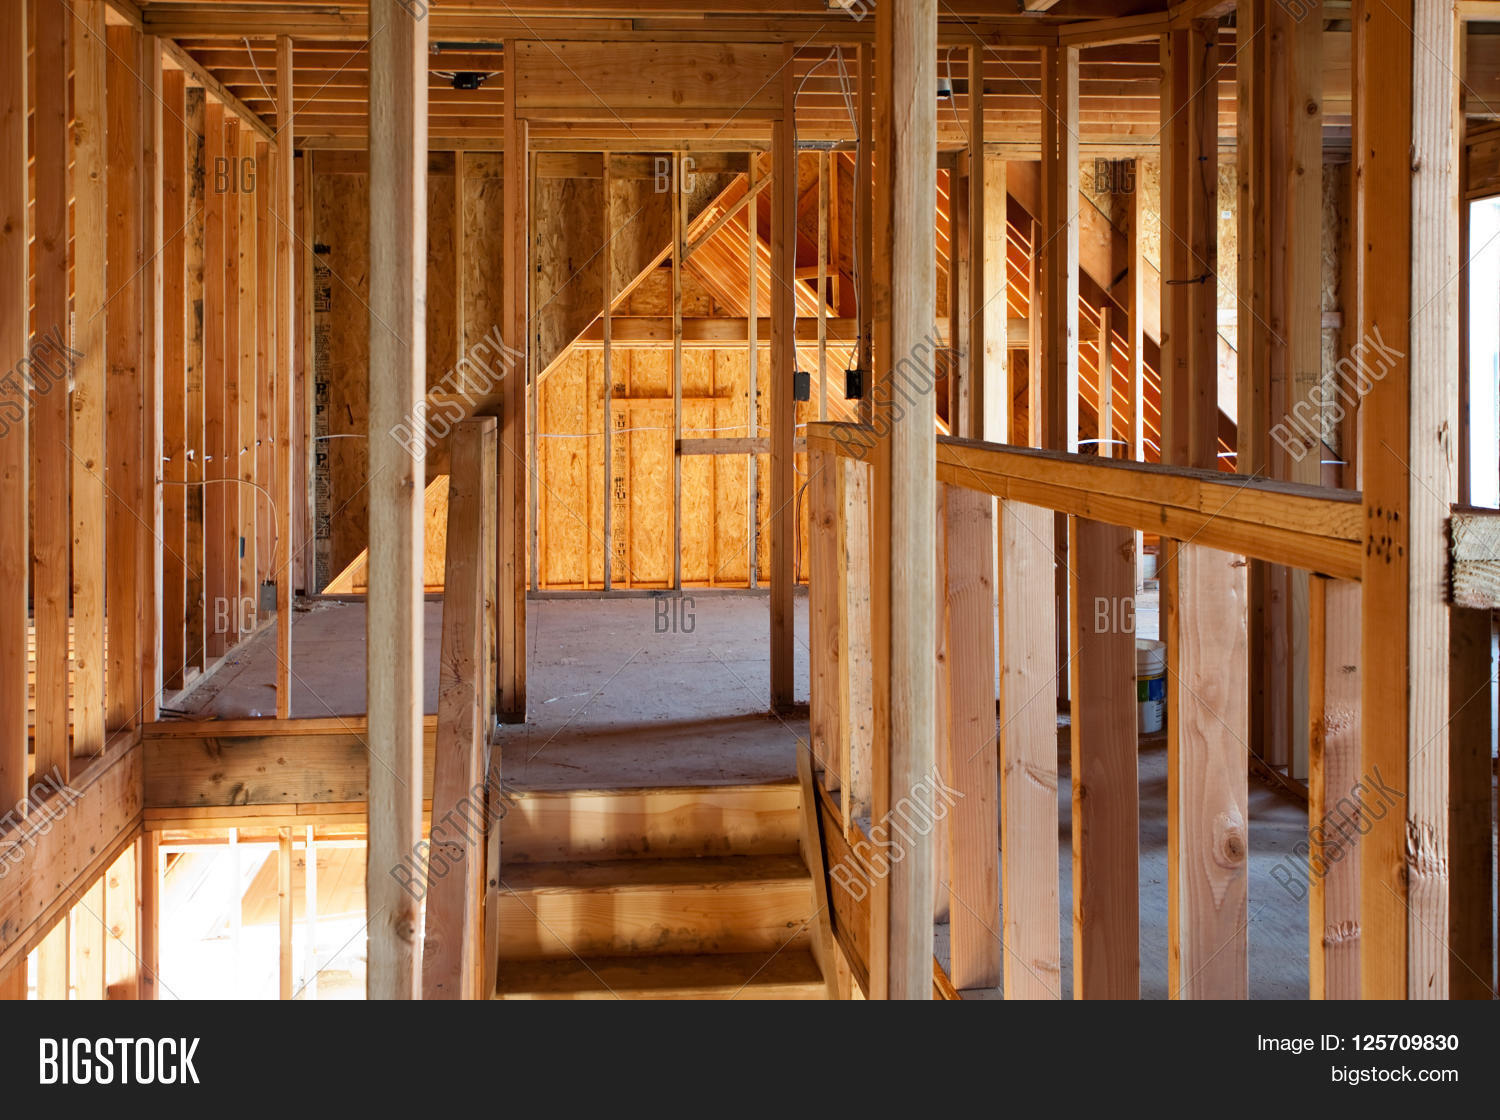 Basic Residential Wiring Tips For An Electrician Home Building And